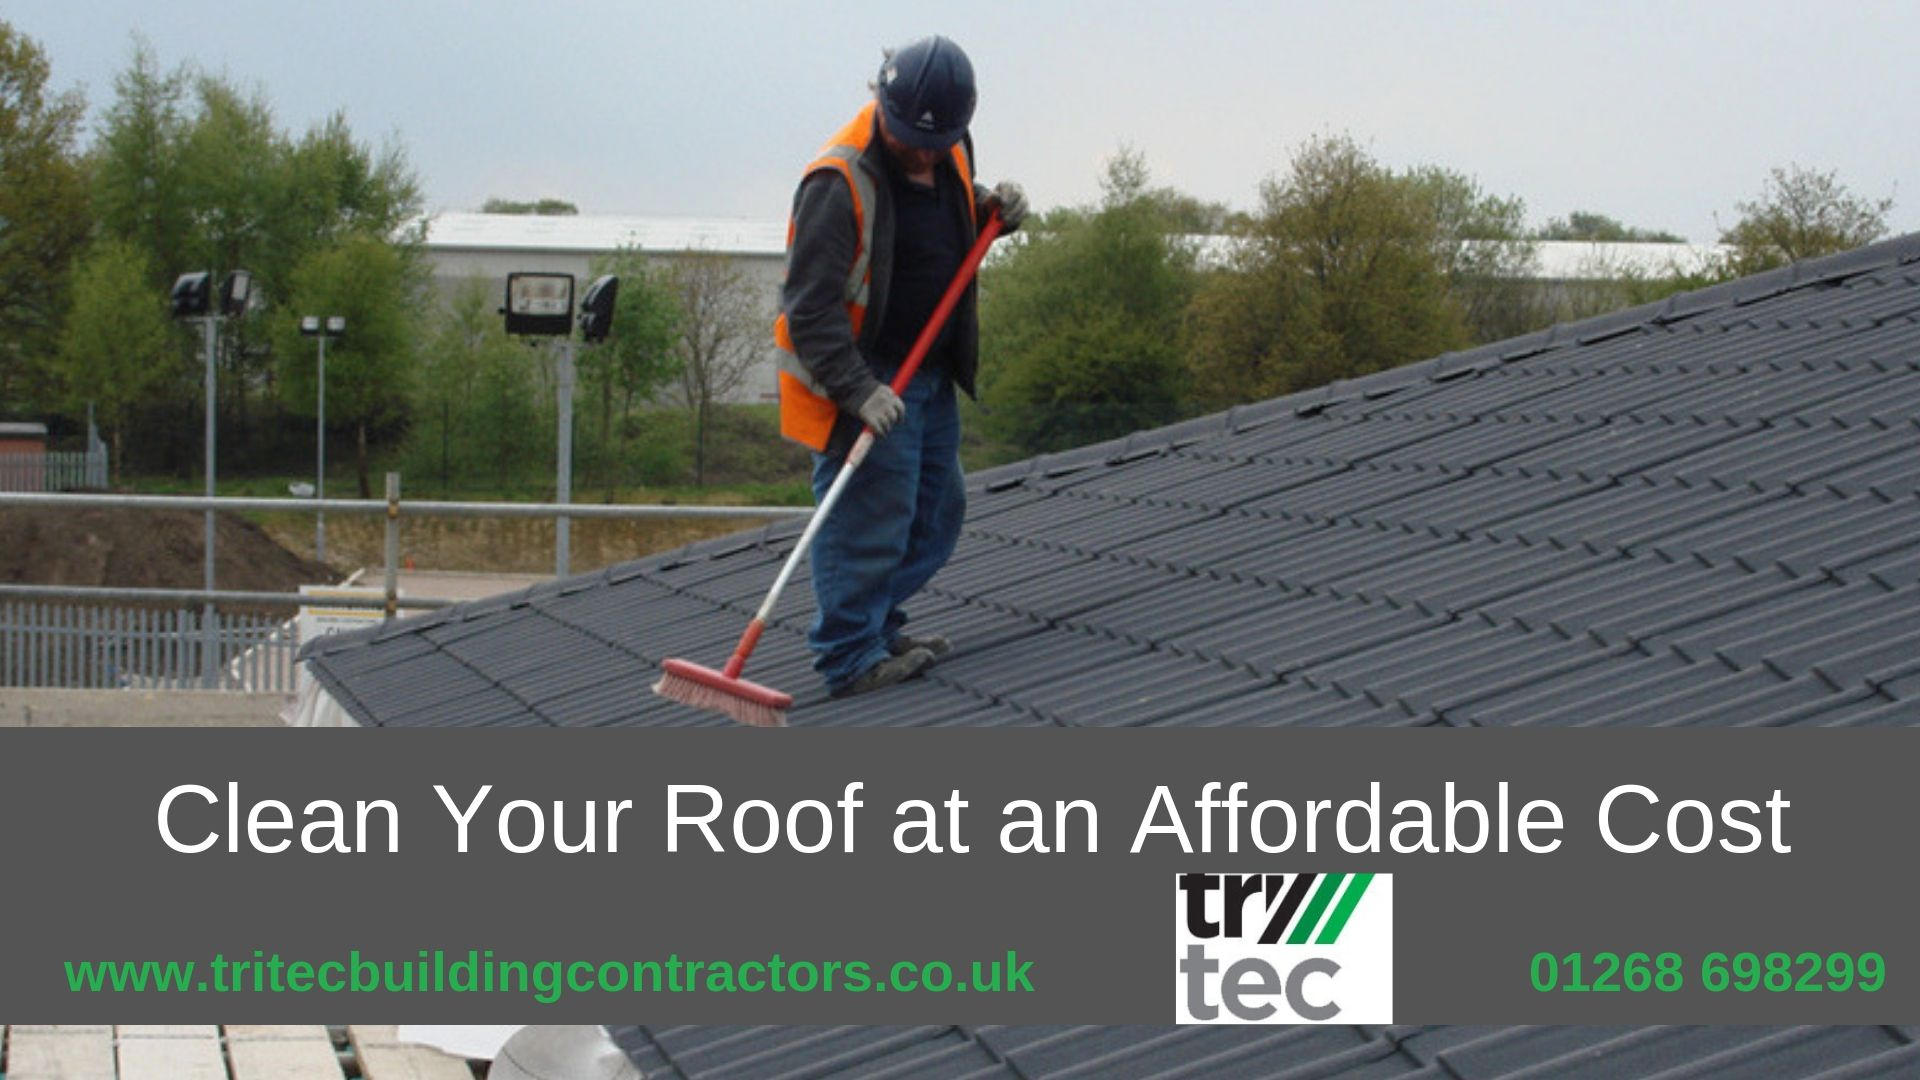 The Roof Of Your House Protects You From The Elements In The Bargain It Also Bears The Brunt Of The Weather Outside Roof Building Contractors Roof Cleaning